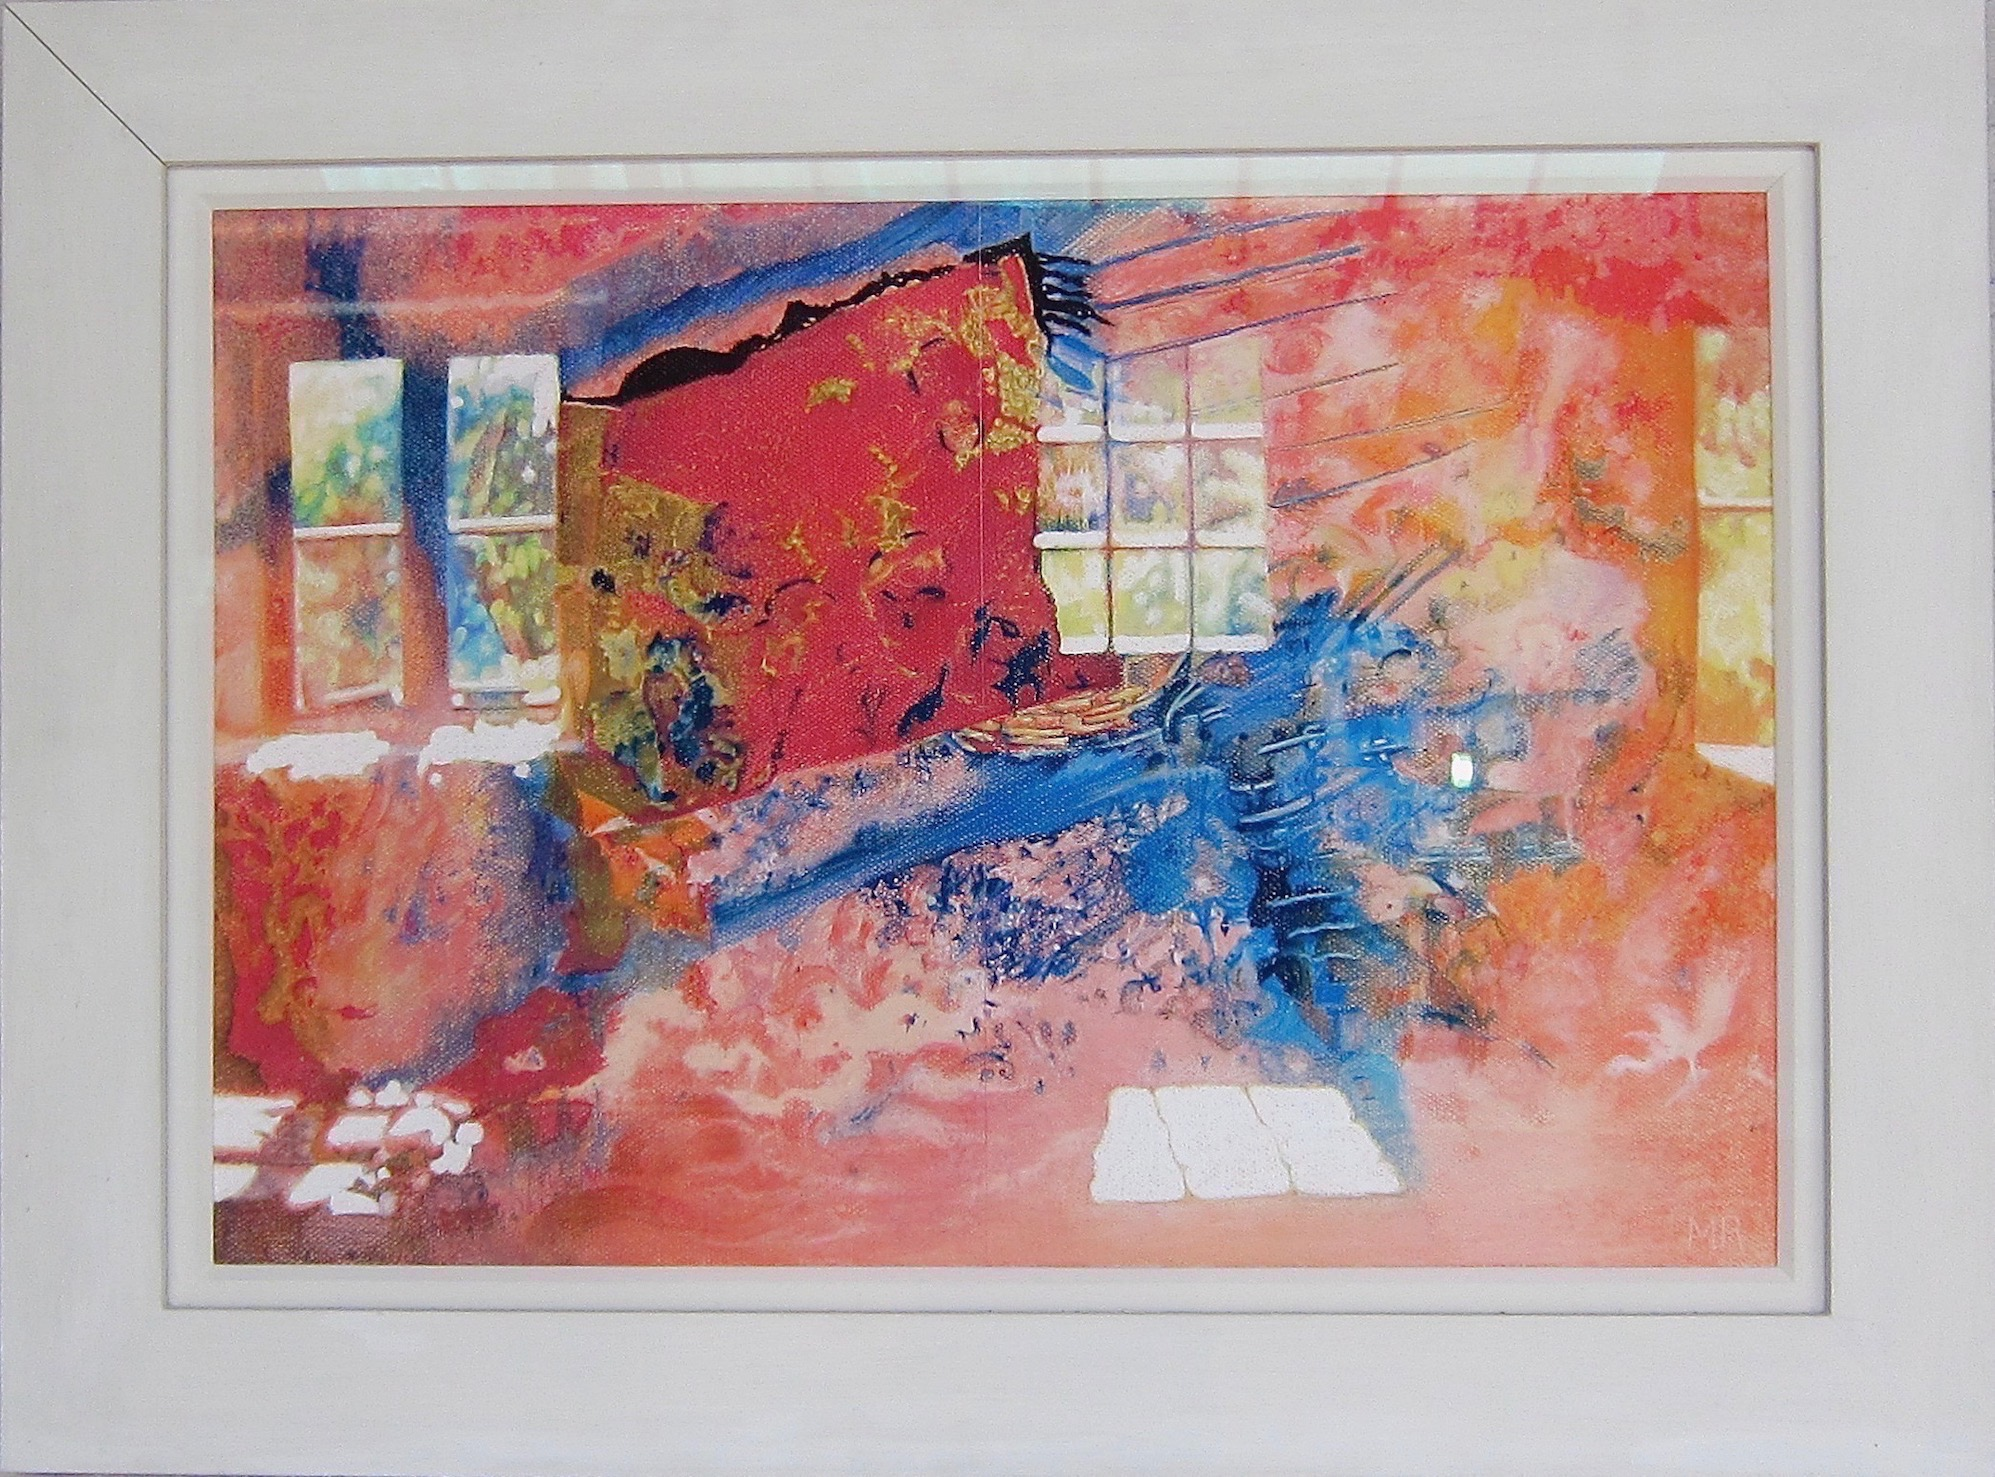 The Oneiric House, pastel on paper, 87 x 65 cms framed